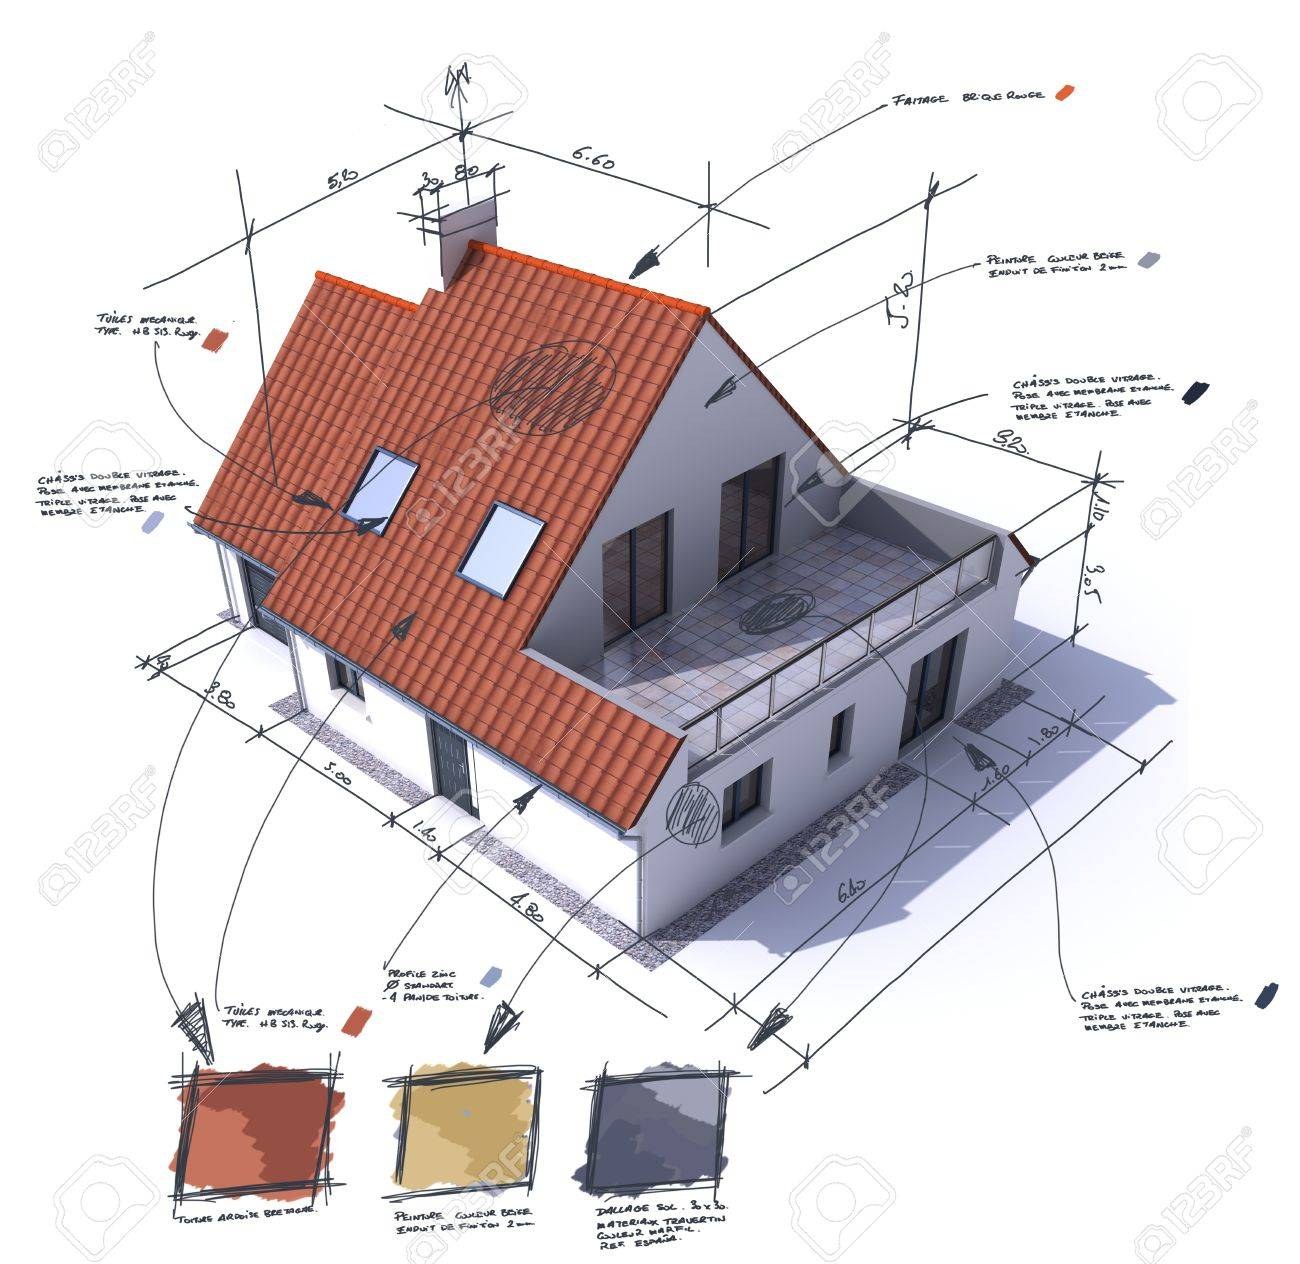 3D Rendering Of A House With Notes, Design, And Technical Specifications  Stock Photo